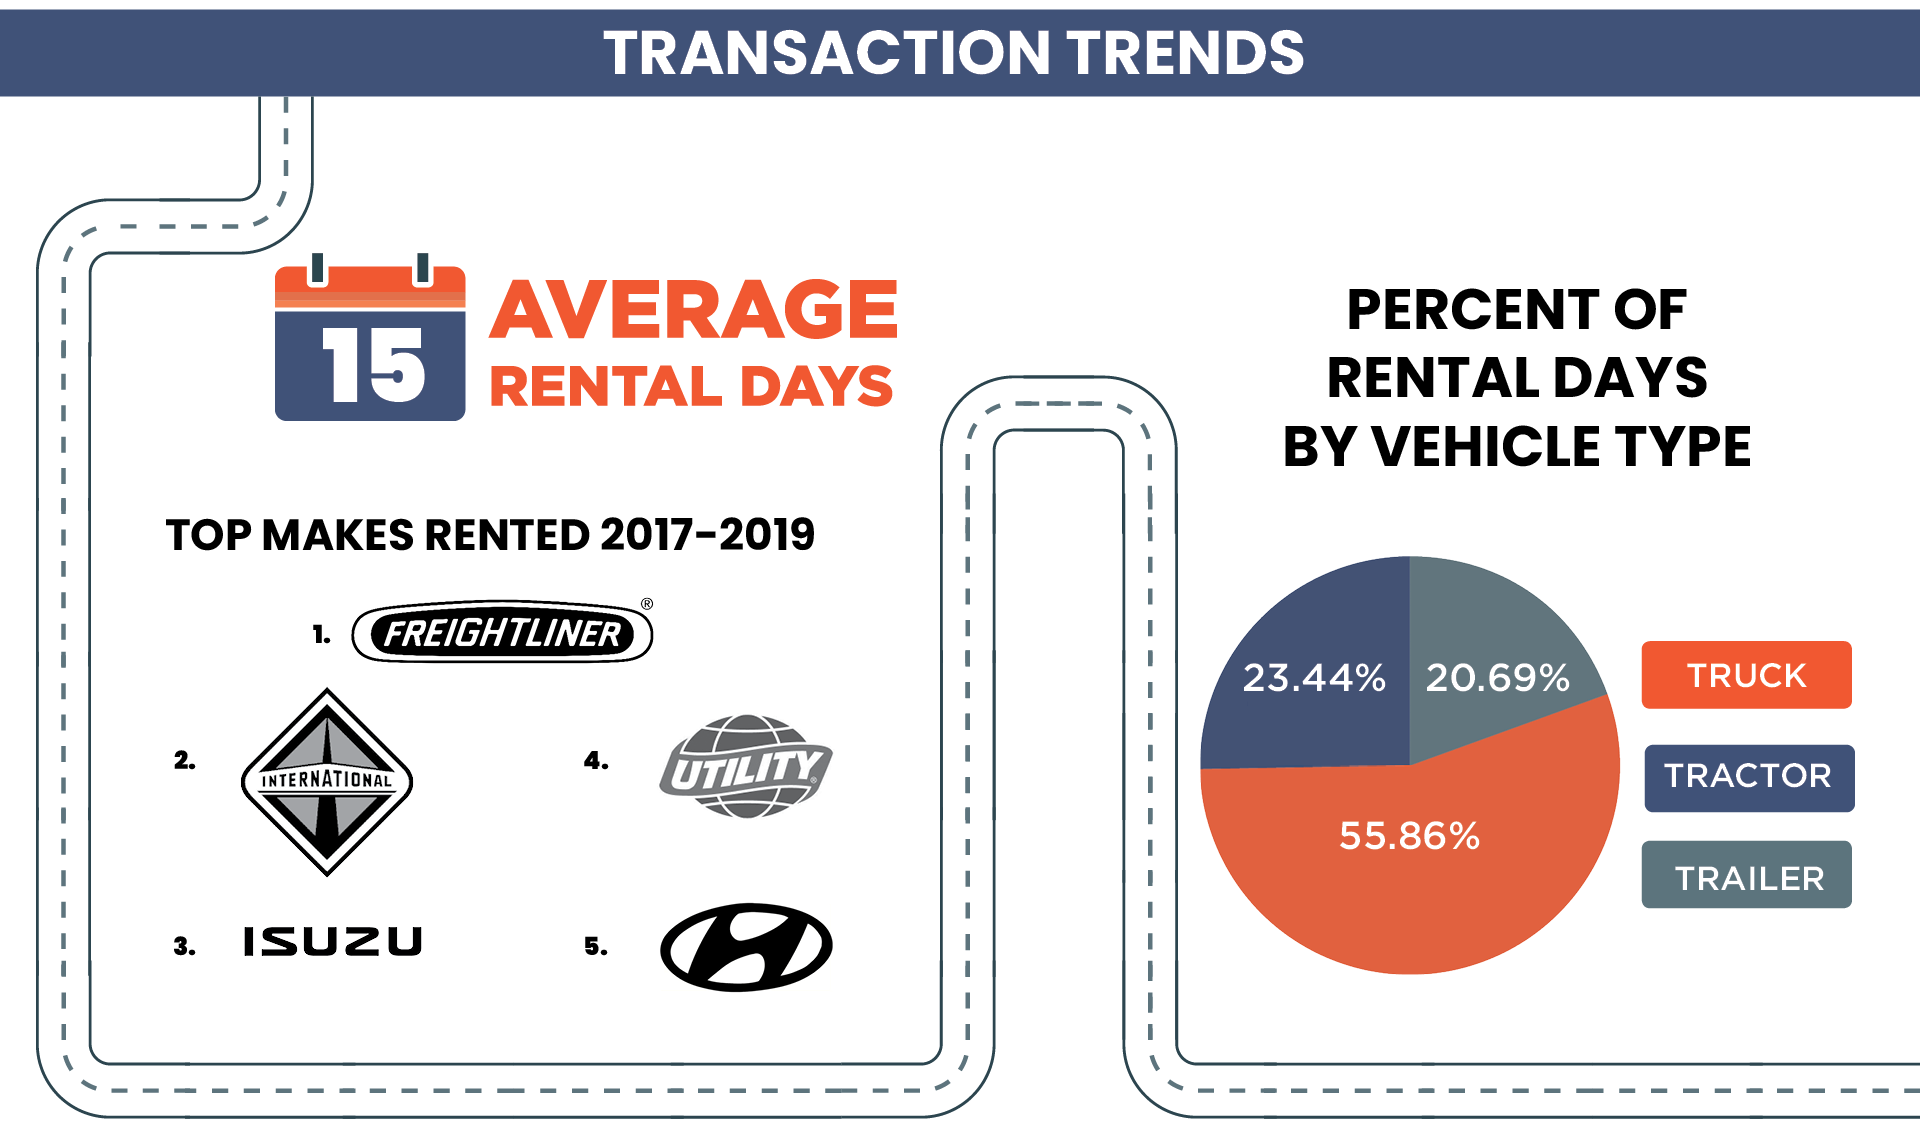 A summary of transaction trends in SoCal. Includes average rental days and top vehicle makes and rental days by vehicle type.